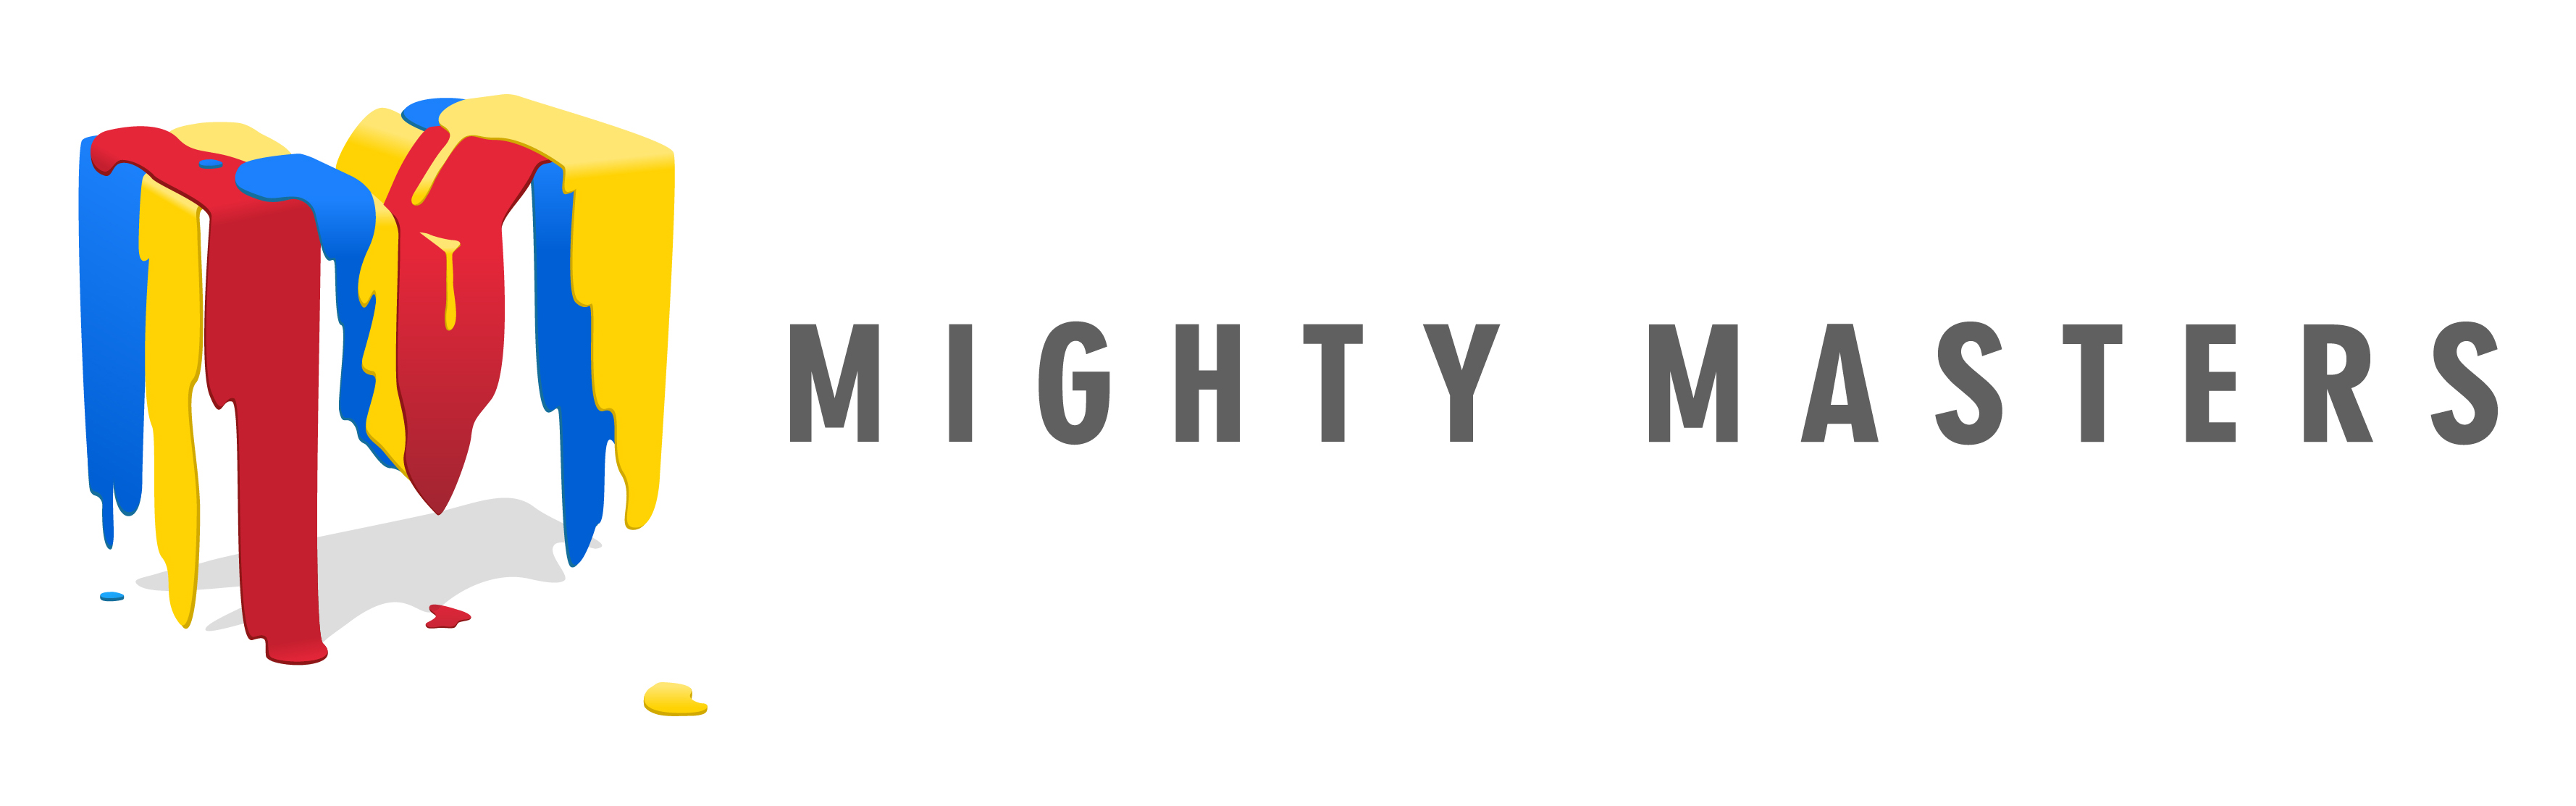 #MIGHTYMASTERS